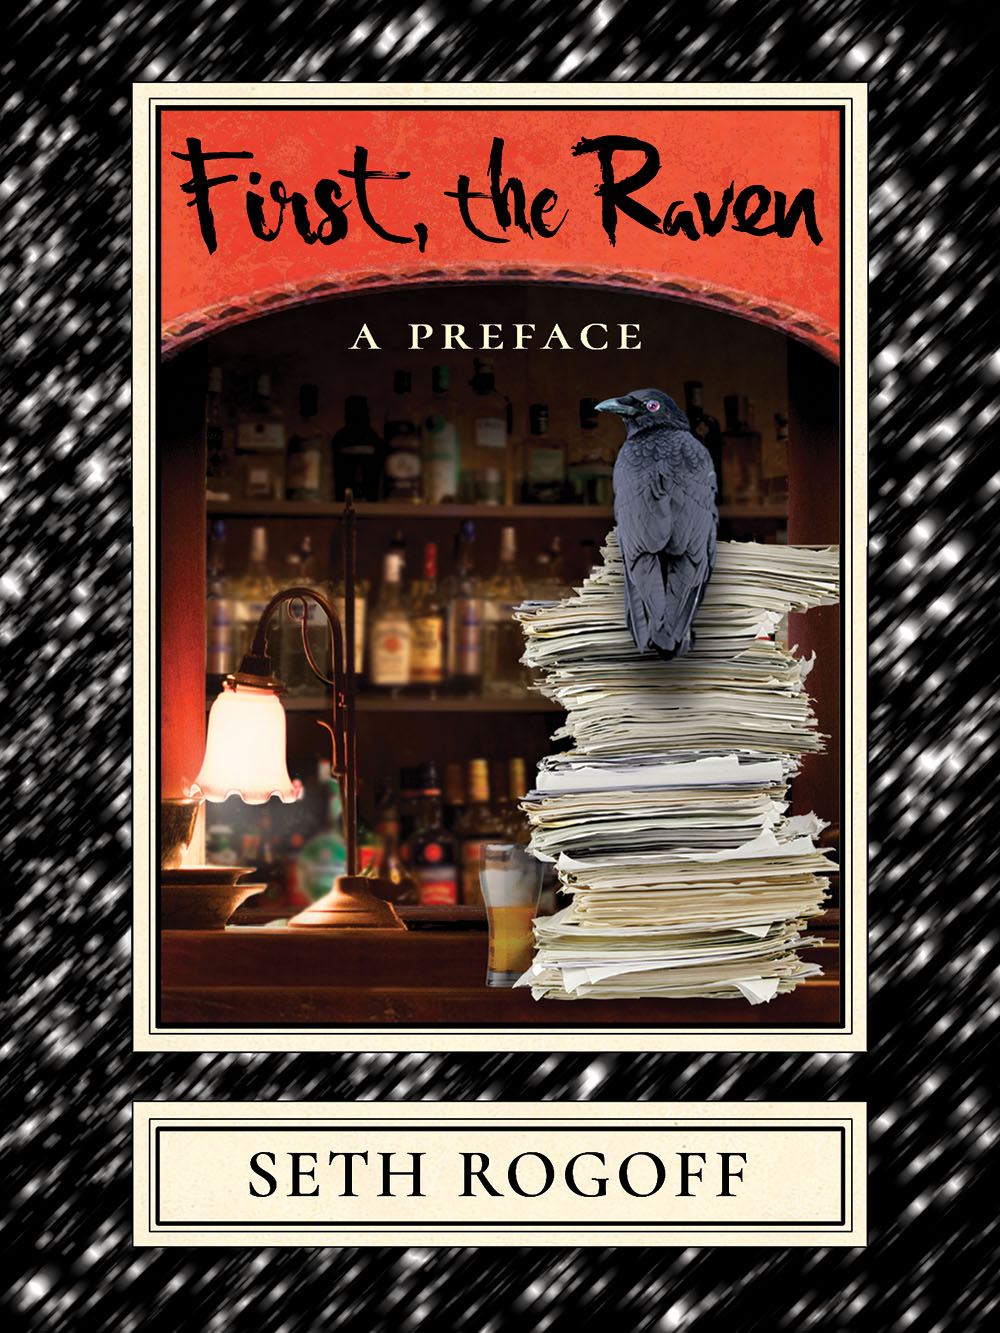 First, the Raven: A Preface